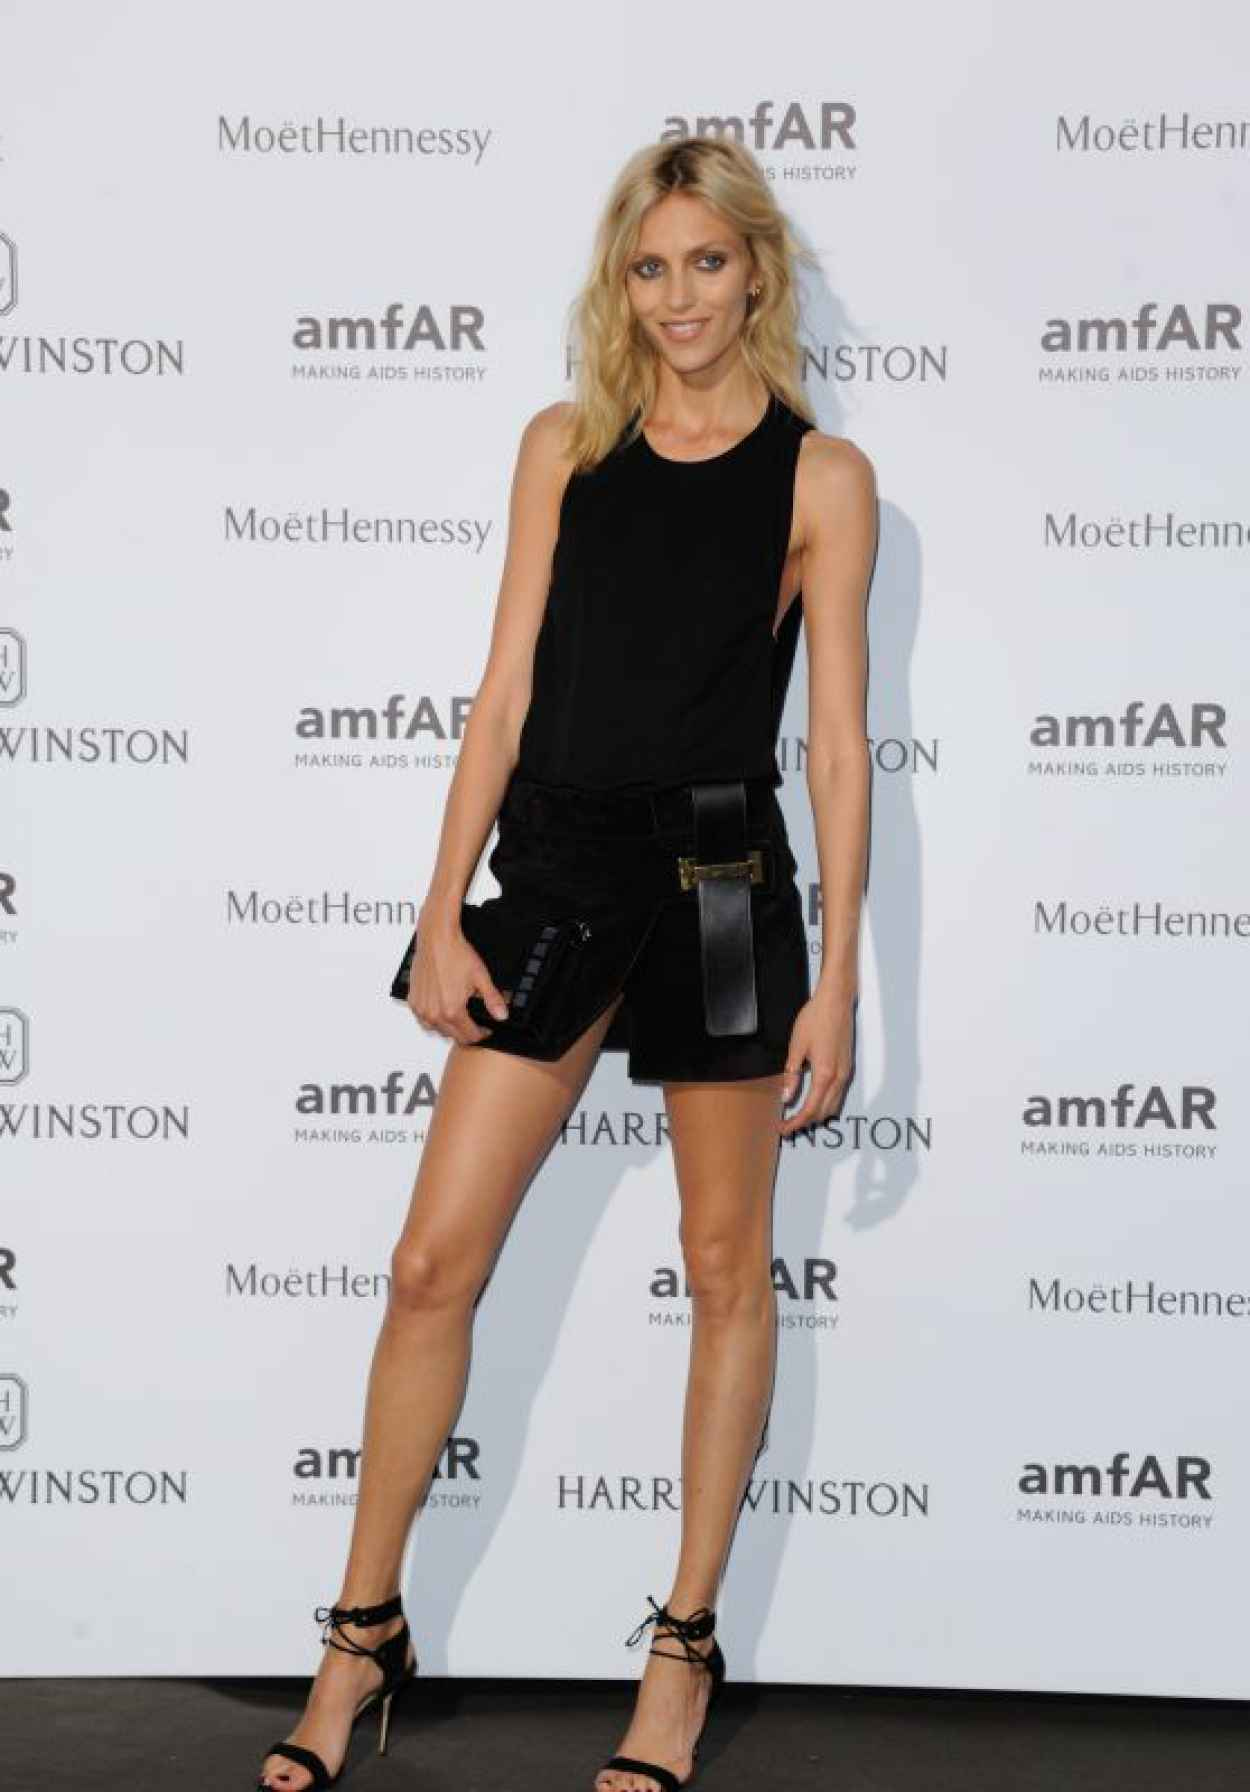 Anja Rubik on Red Carpet - amfAR Dinner in Paris, July 2015-1